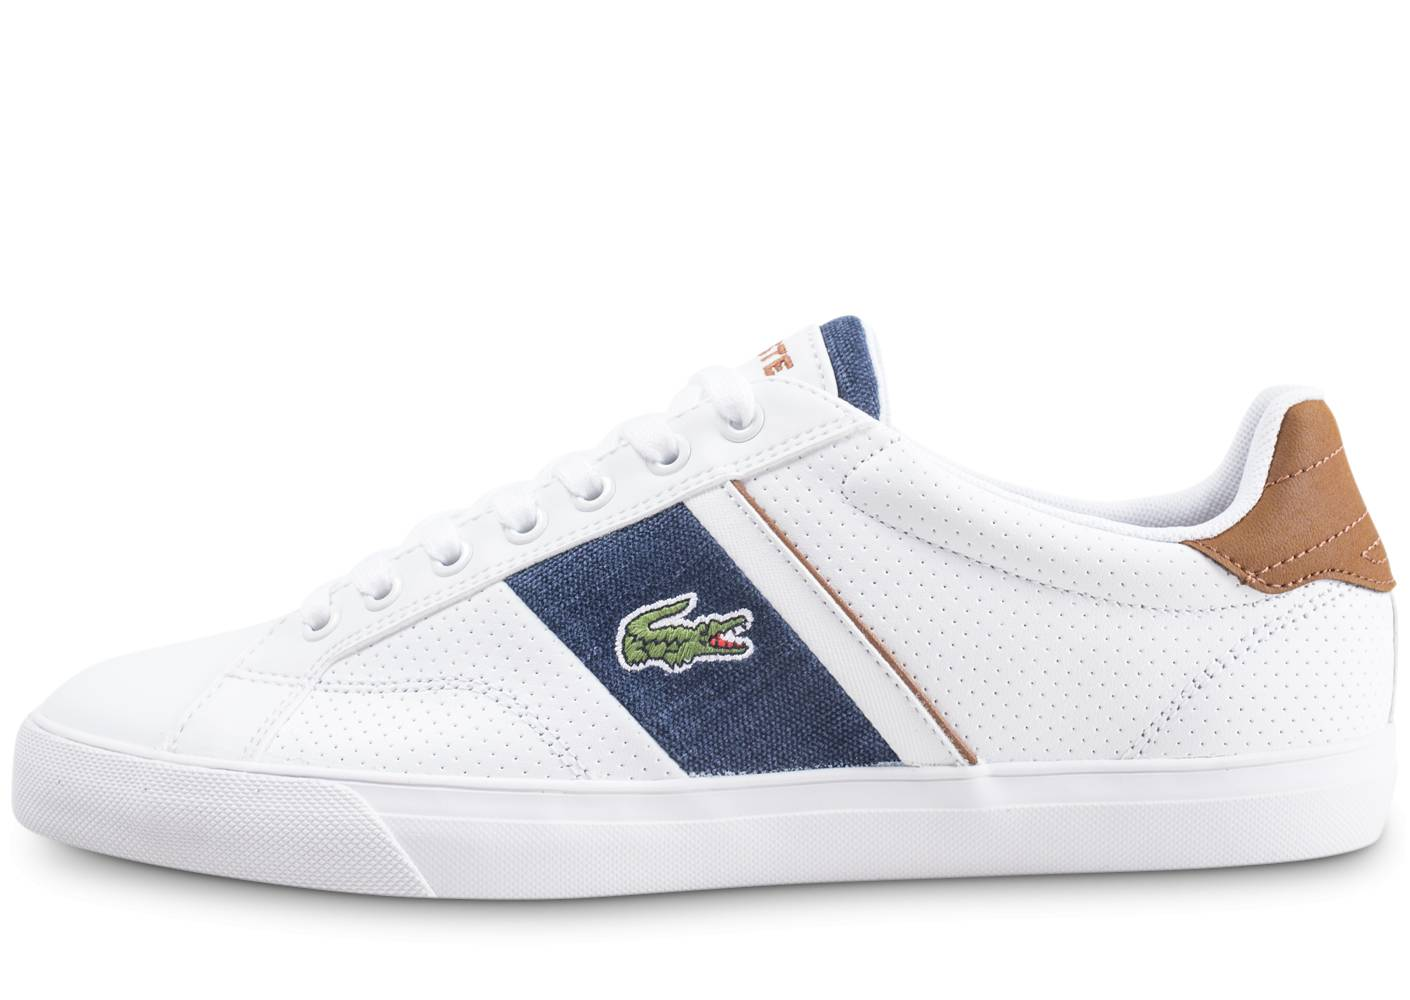 Lacoste Homme Fairlead Blanche Baskets 46